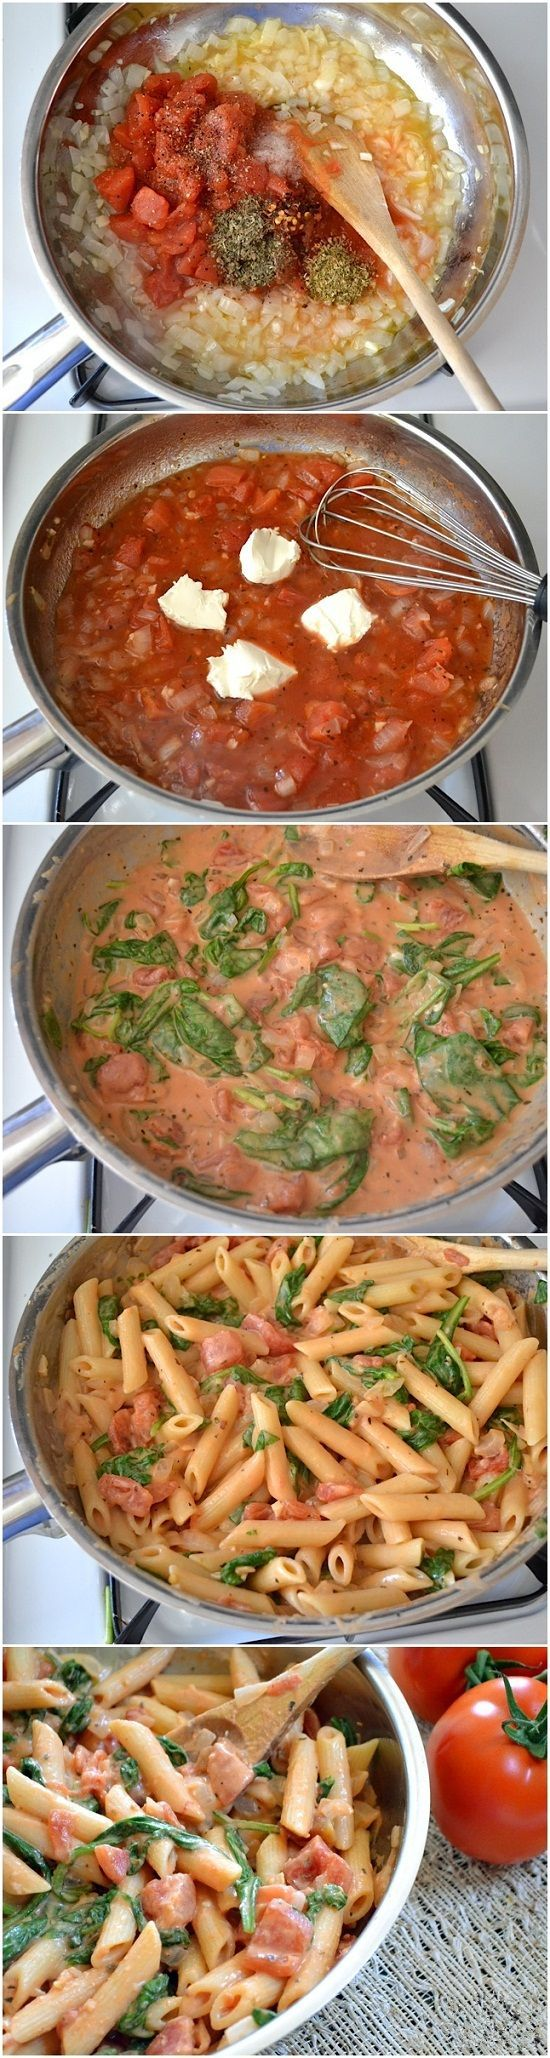 Creamy Tomato Spinach Pasta ~ It's so easy to make, and we're sure you already have all the needed ingredients on hand.